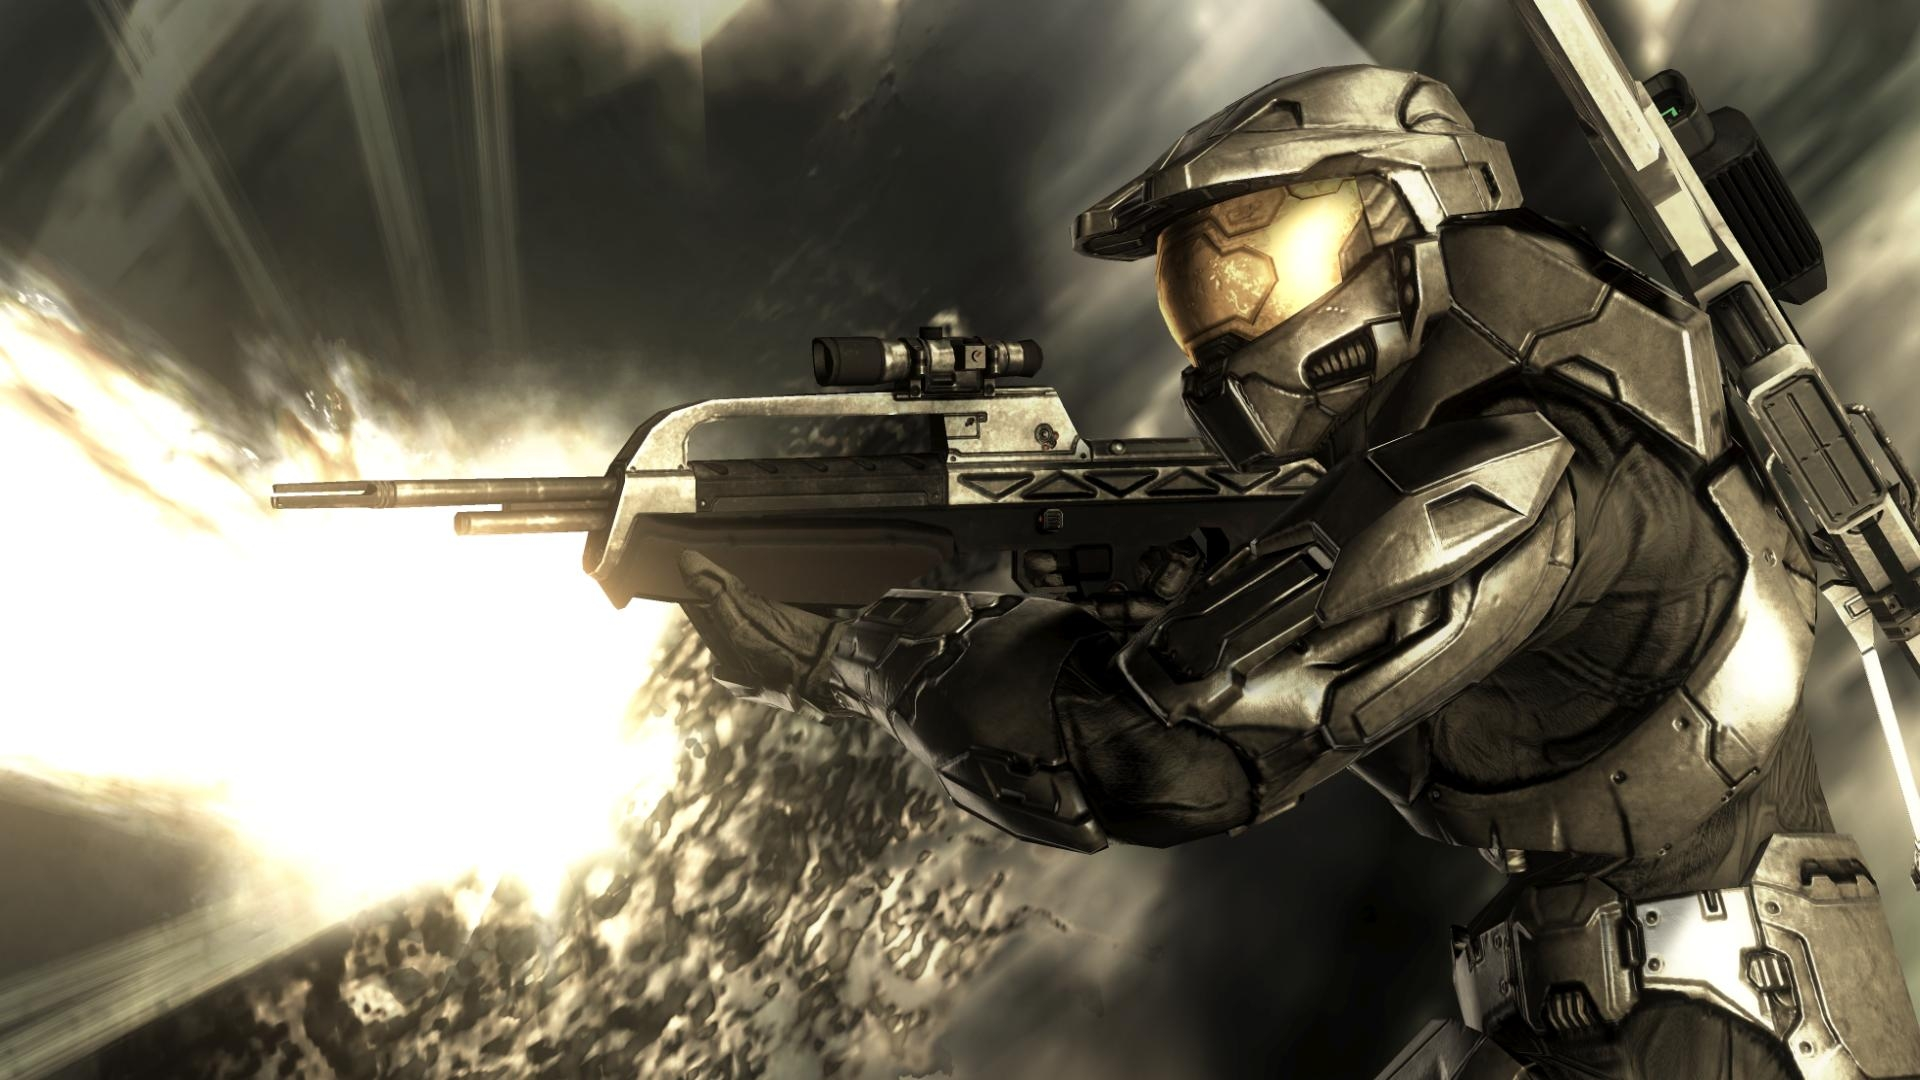 Full HD 1080p Halo Wallpapers HD, Desktop Backgrounds 1920x1080